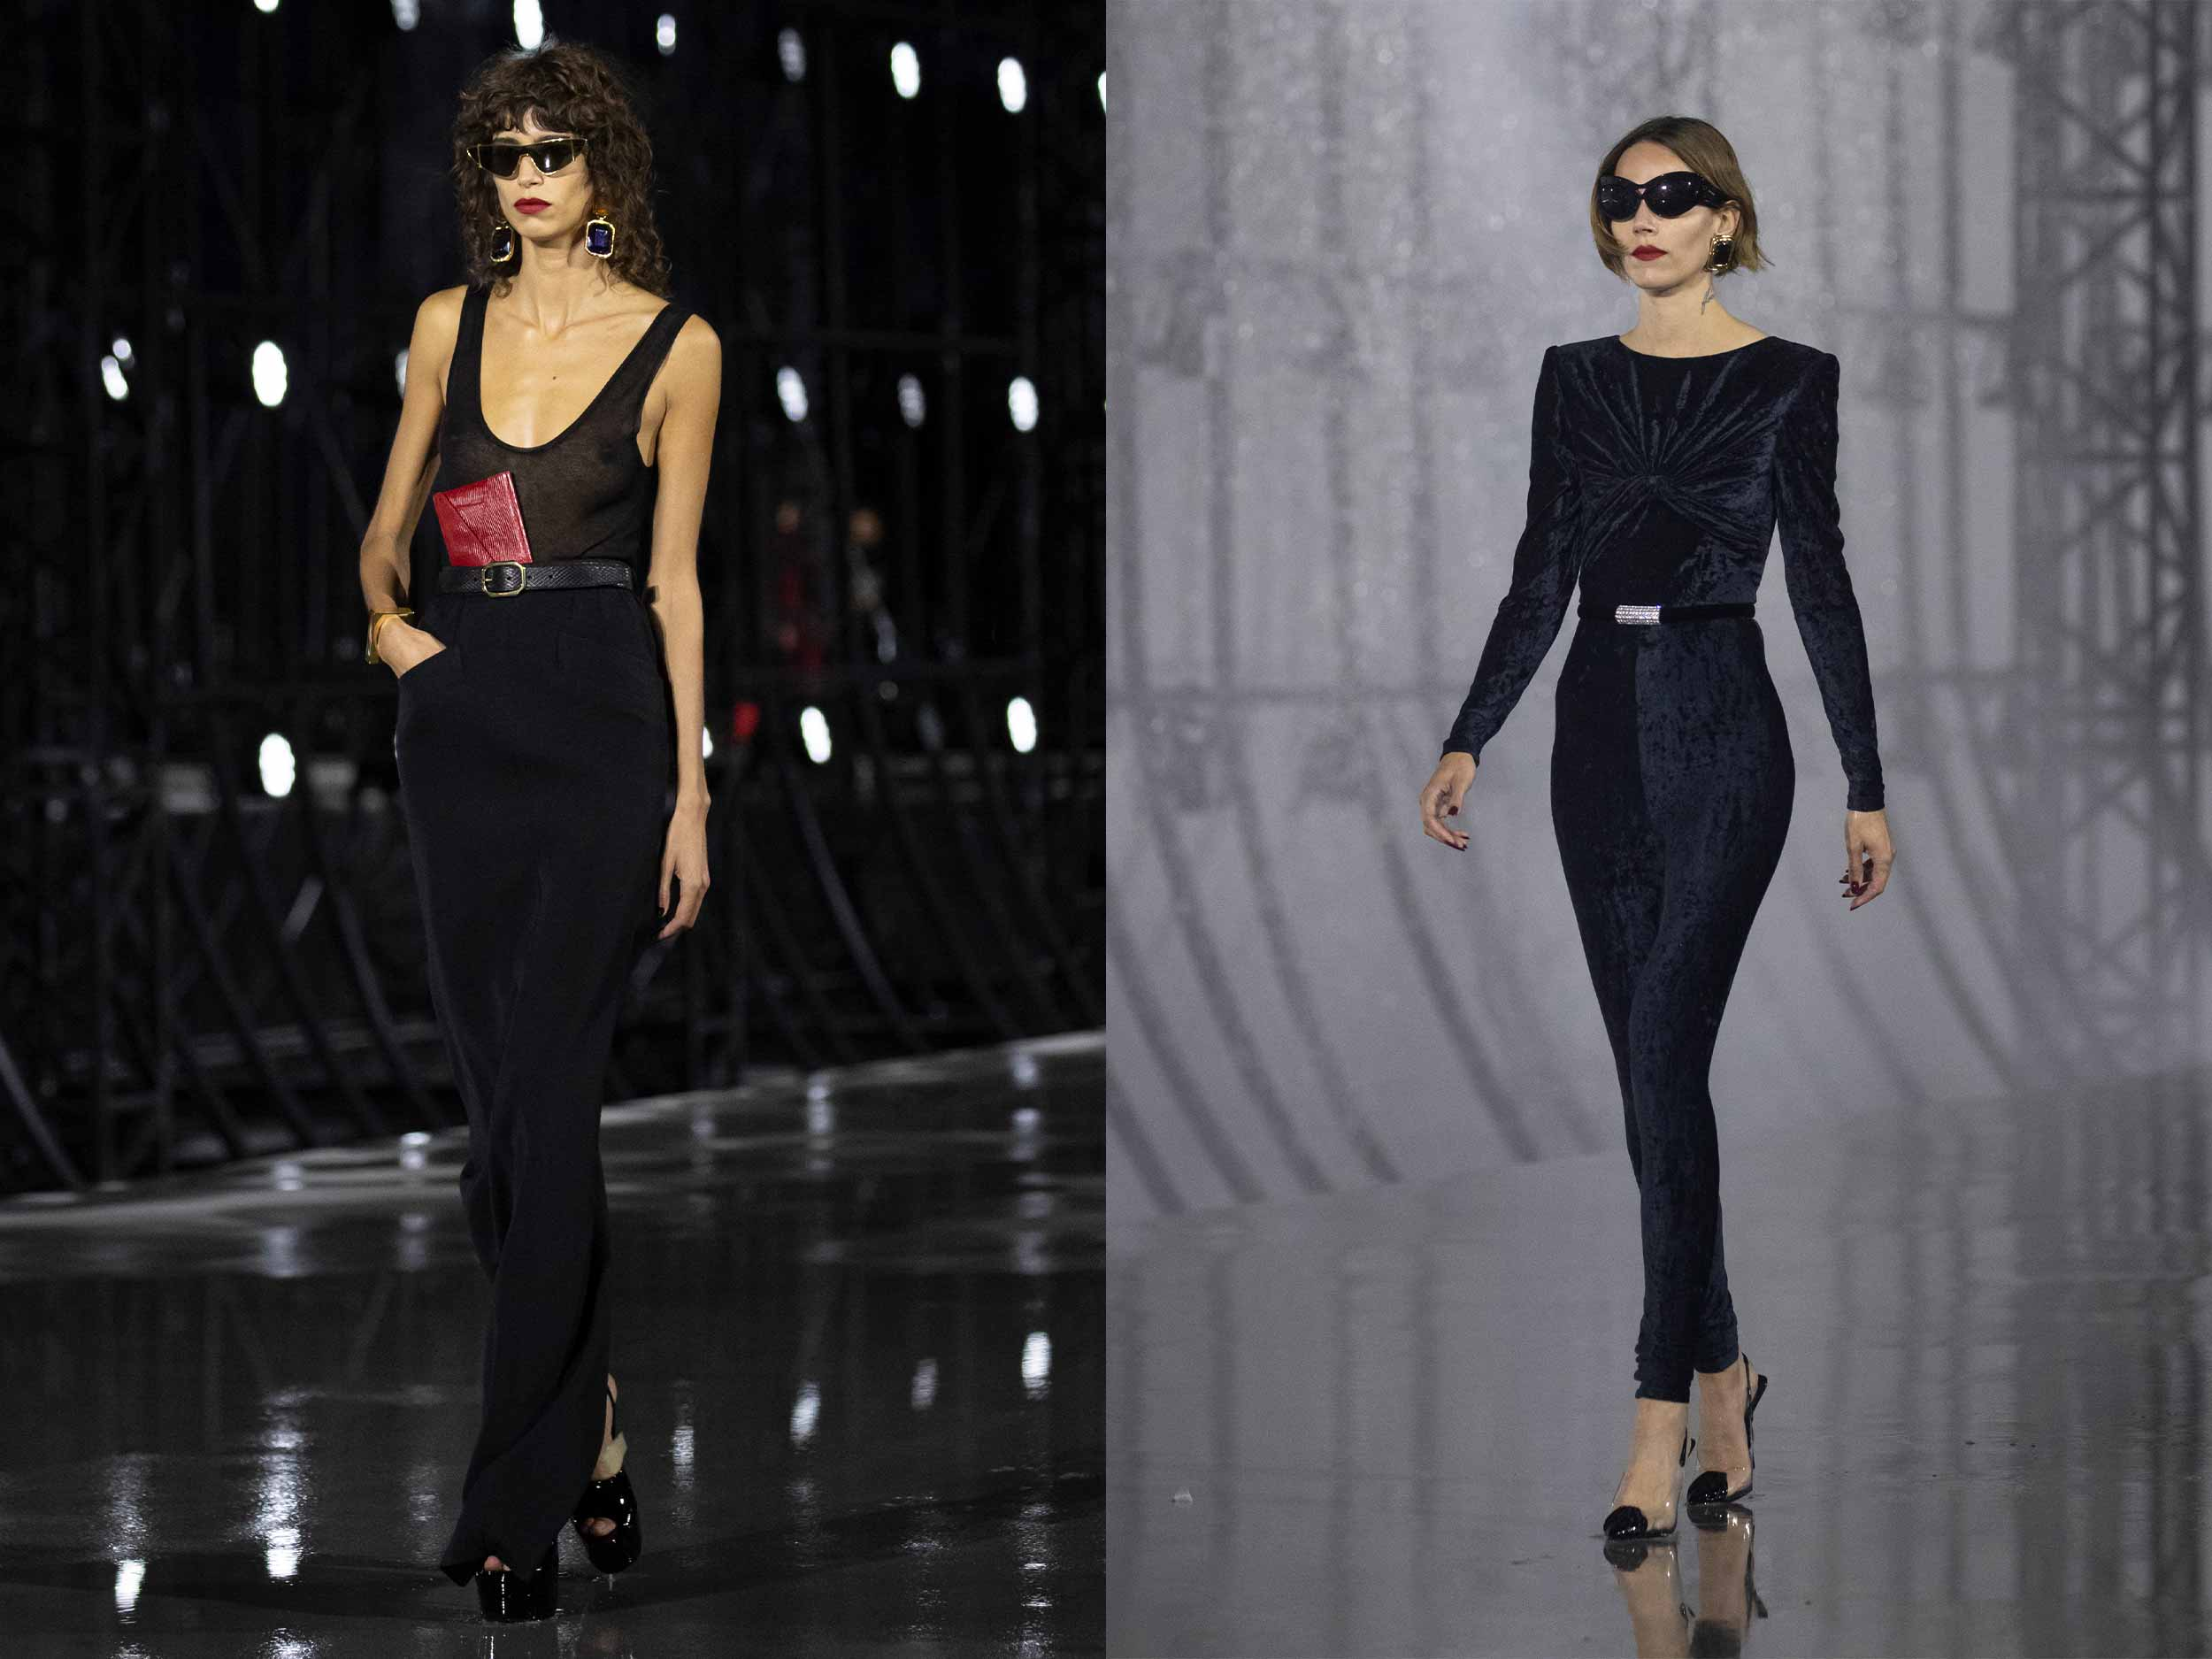 Saint Laurent centers the sensuality of power